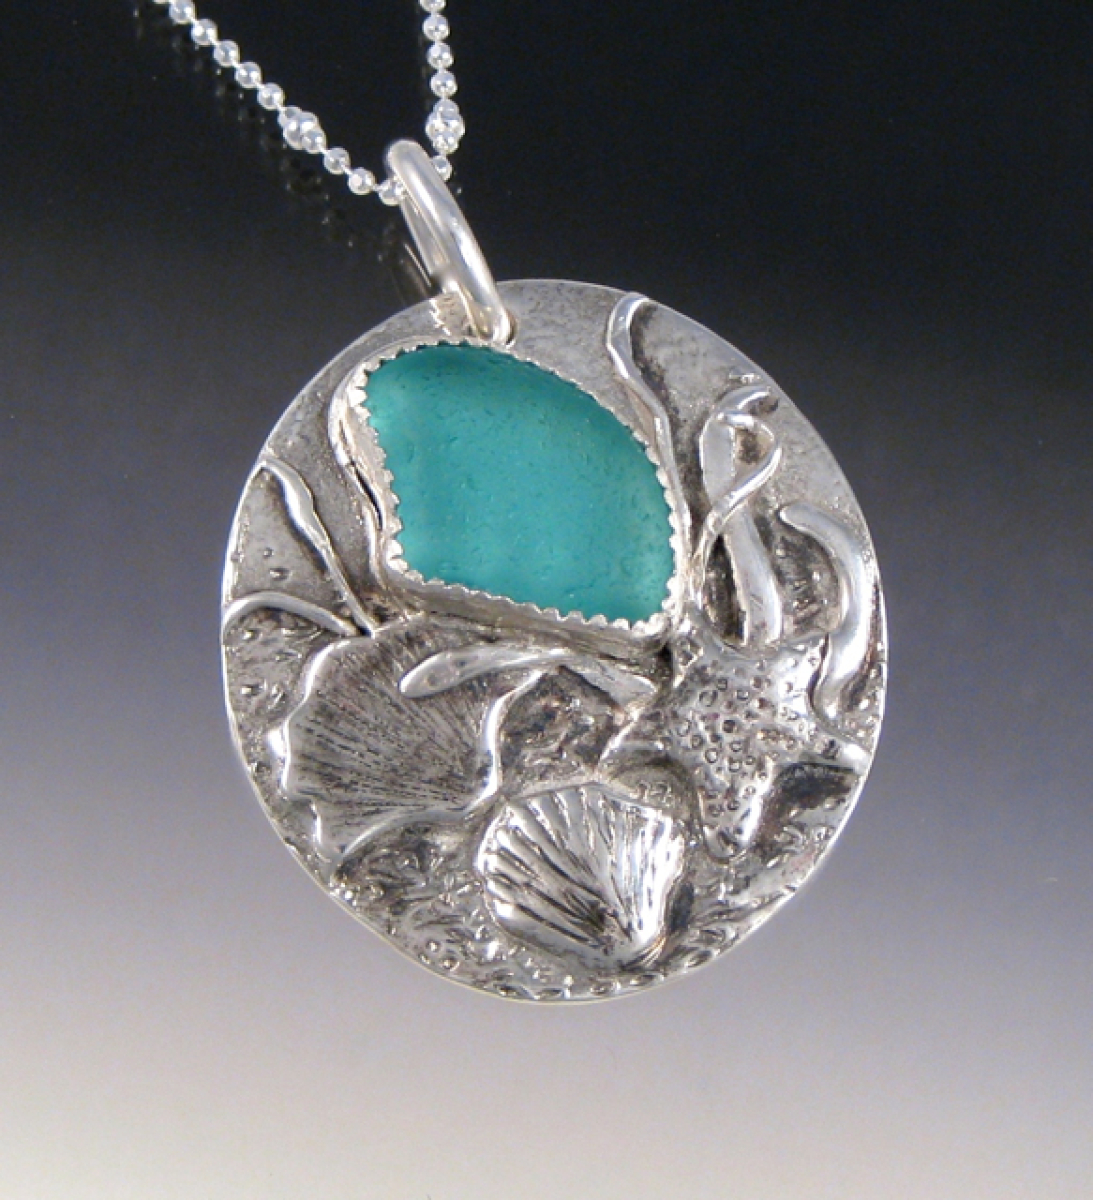 day special pendants your art jewelry a order the pendant found custom at of by beach objects sea